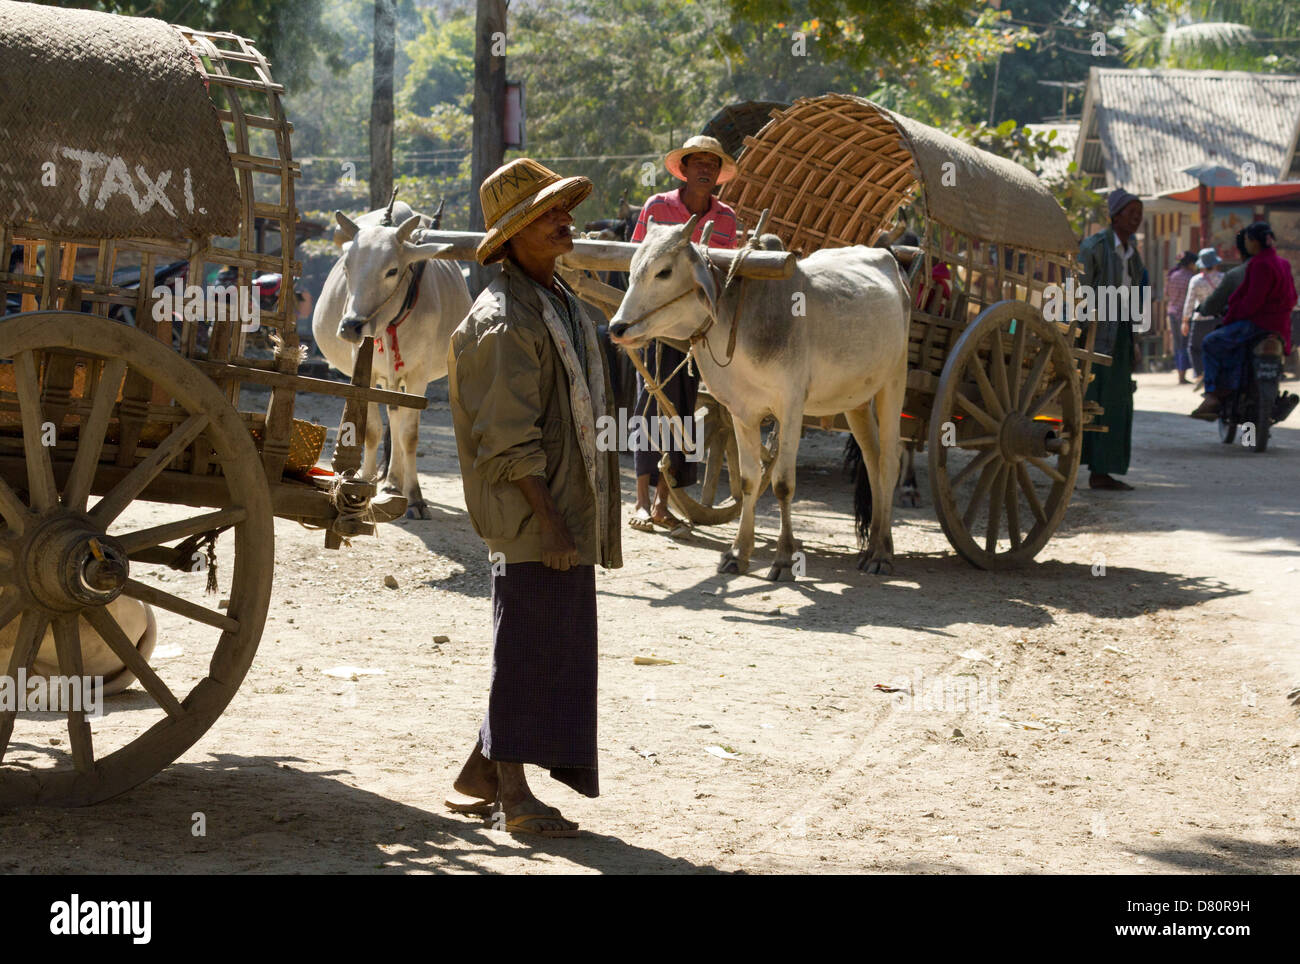 State-of-the-art Taxi service in Mingun, Myanmar 3 - Stock Image